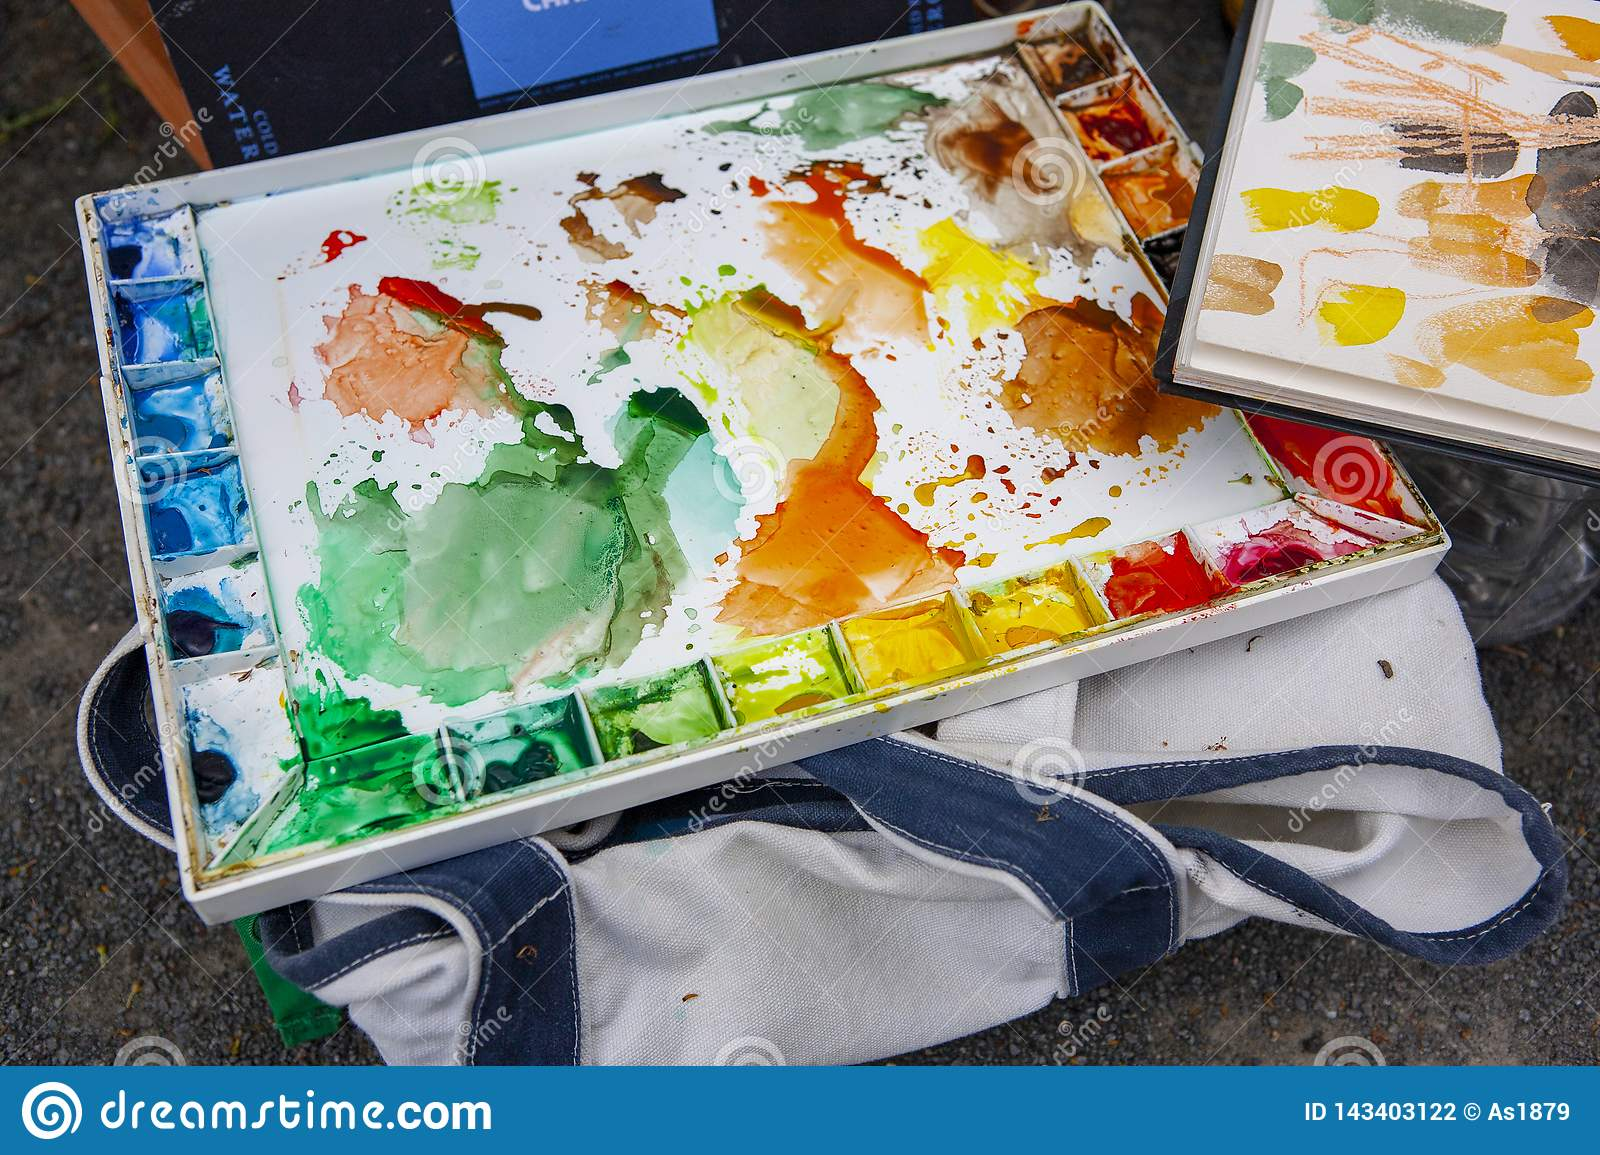 Colorful used water color pallette with blotches of paint patterns and markings